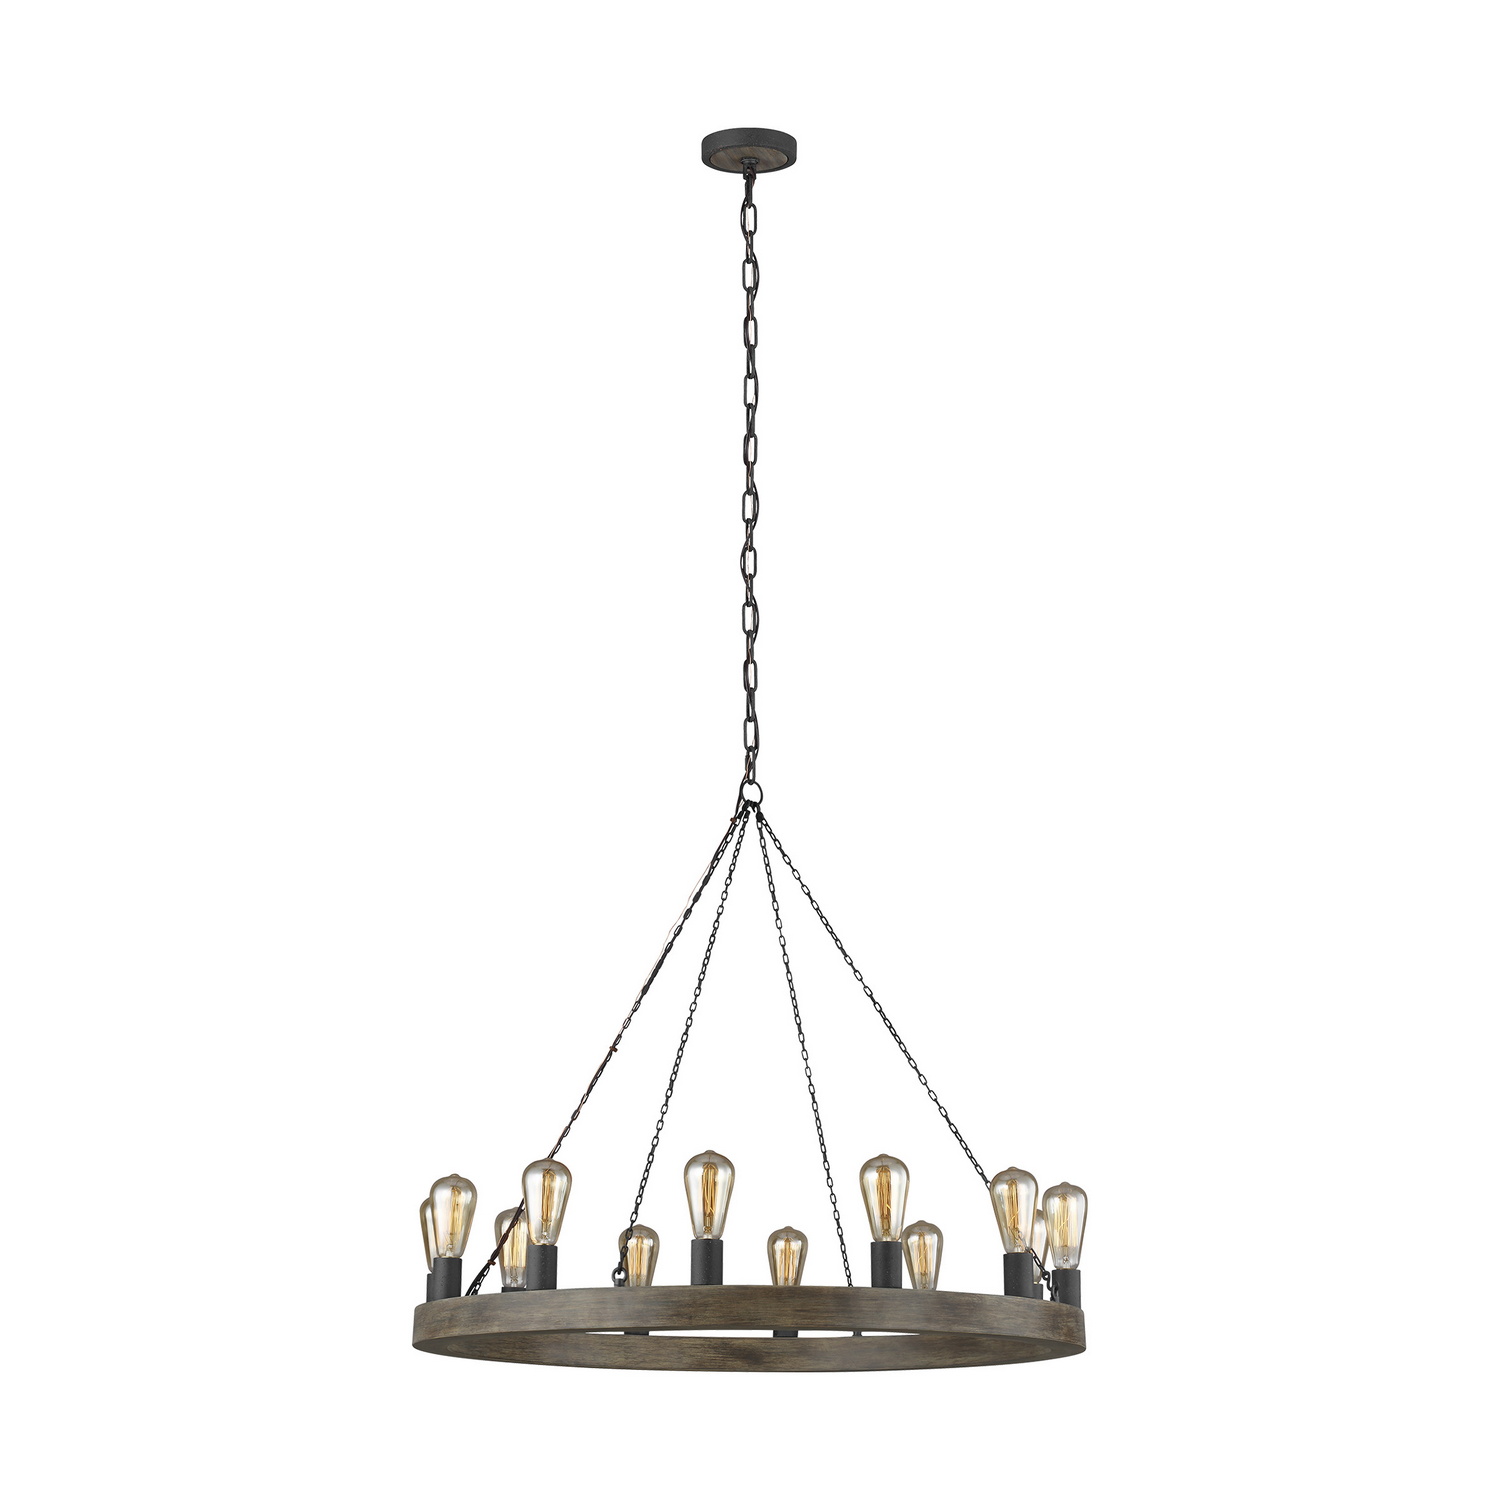 12 Light Chandelier from the Avenir collection by Feiss F393212WOWAF